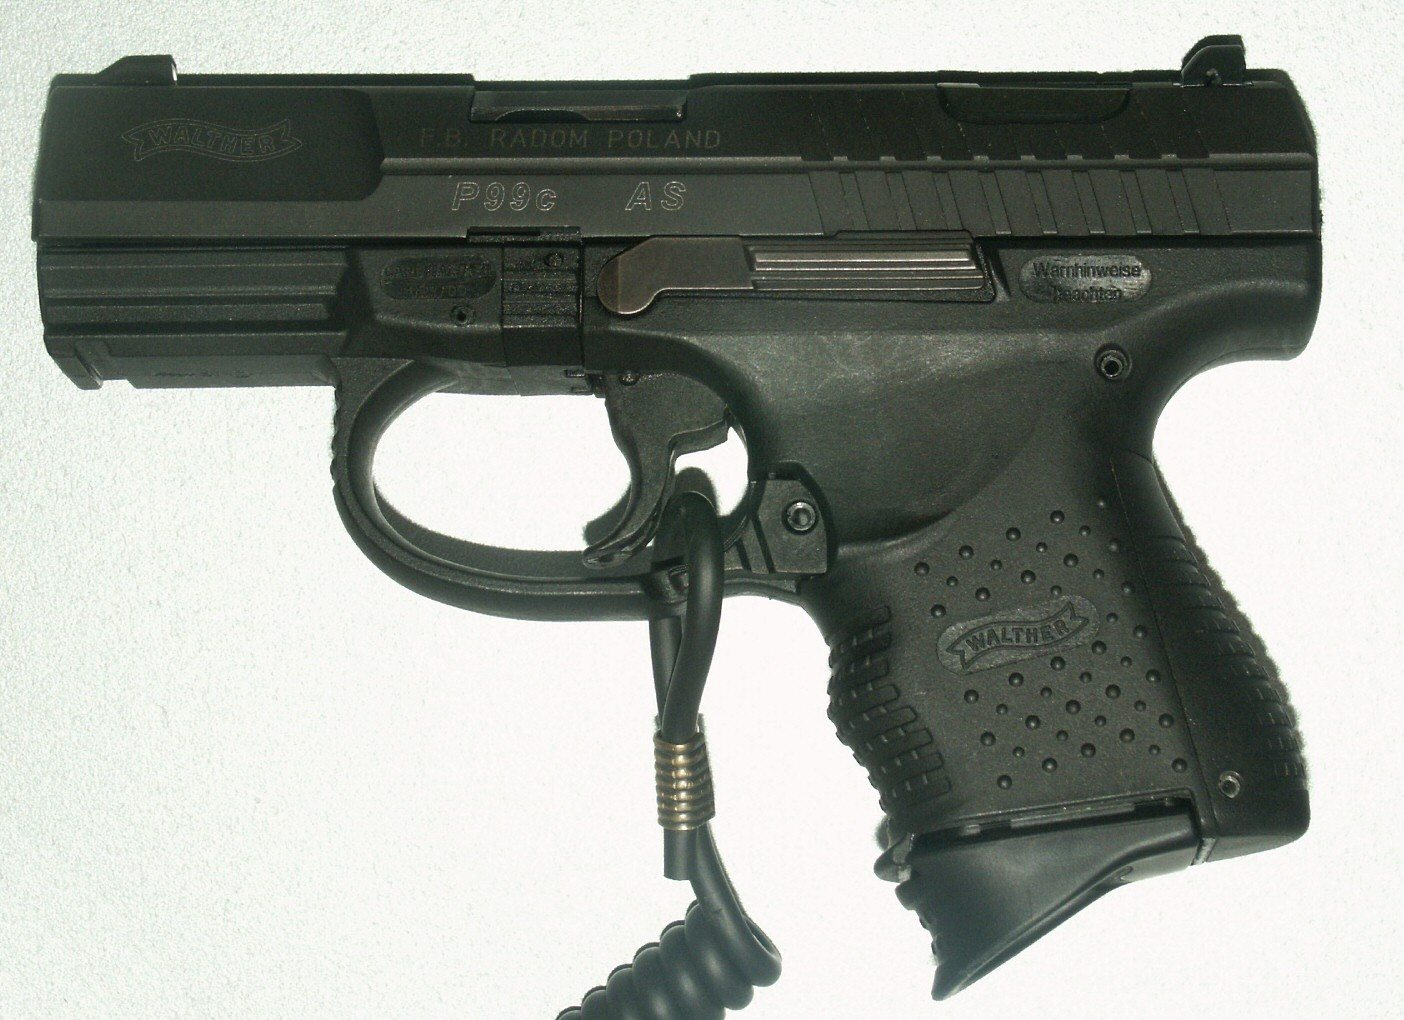 The Polish P99 AS made in Poland. Source- Wikipedia